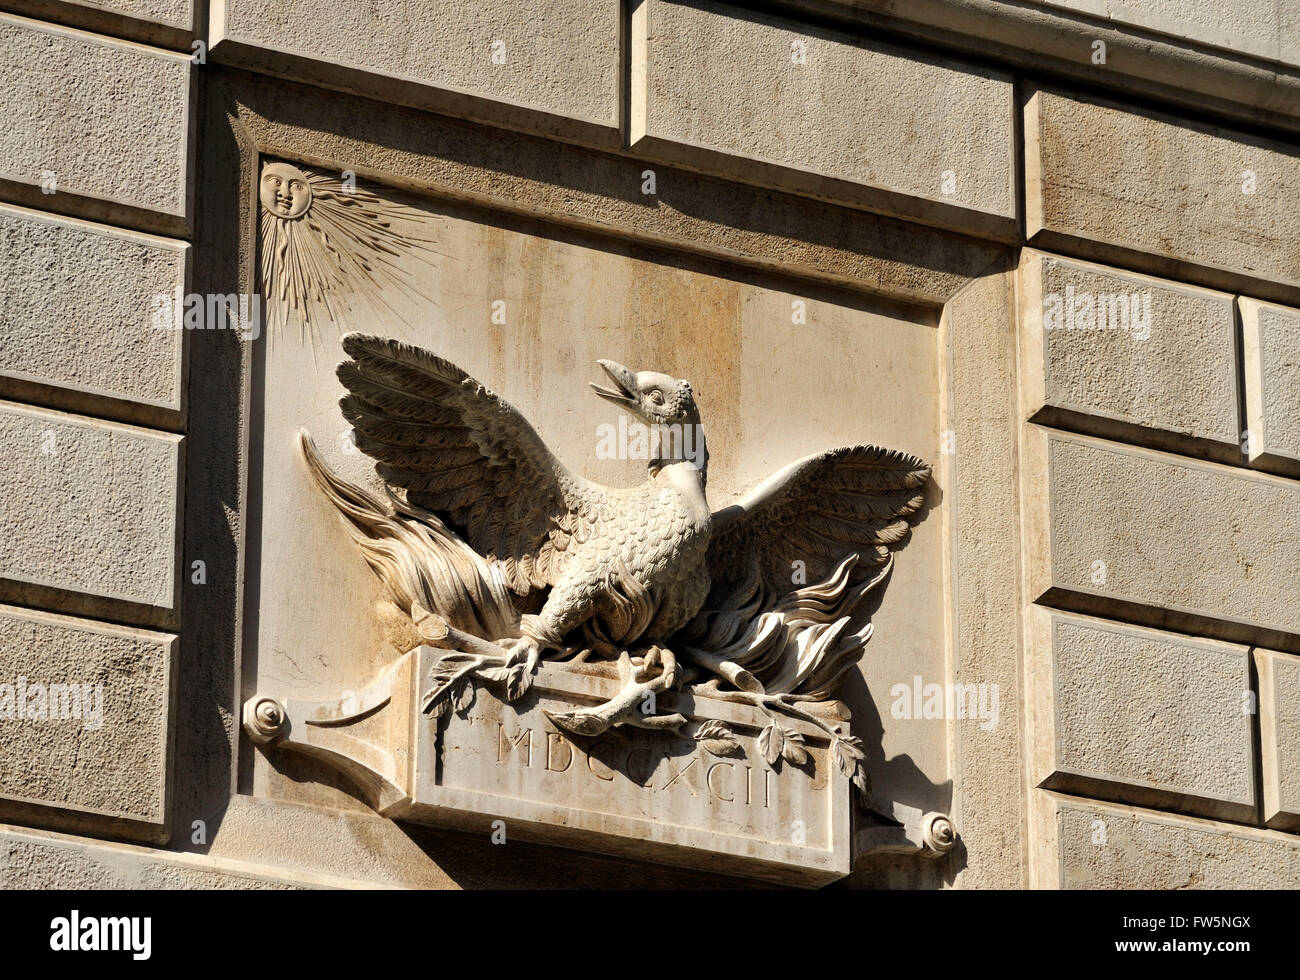 Phoenix, La Fenice. Stone carved phoenix on the wall of the new opera house La Fenice in Venice, reopened 2003, - Stock Image